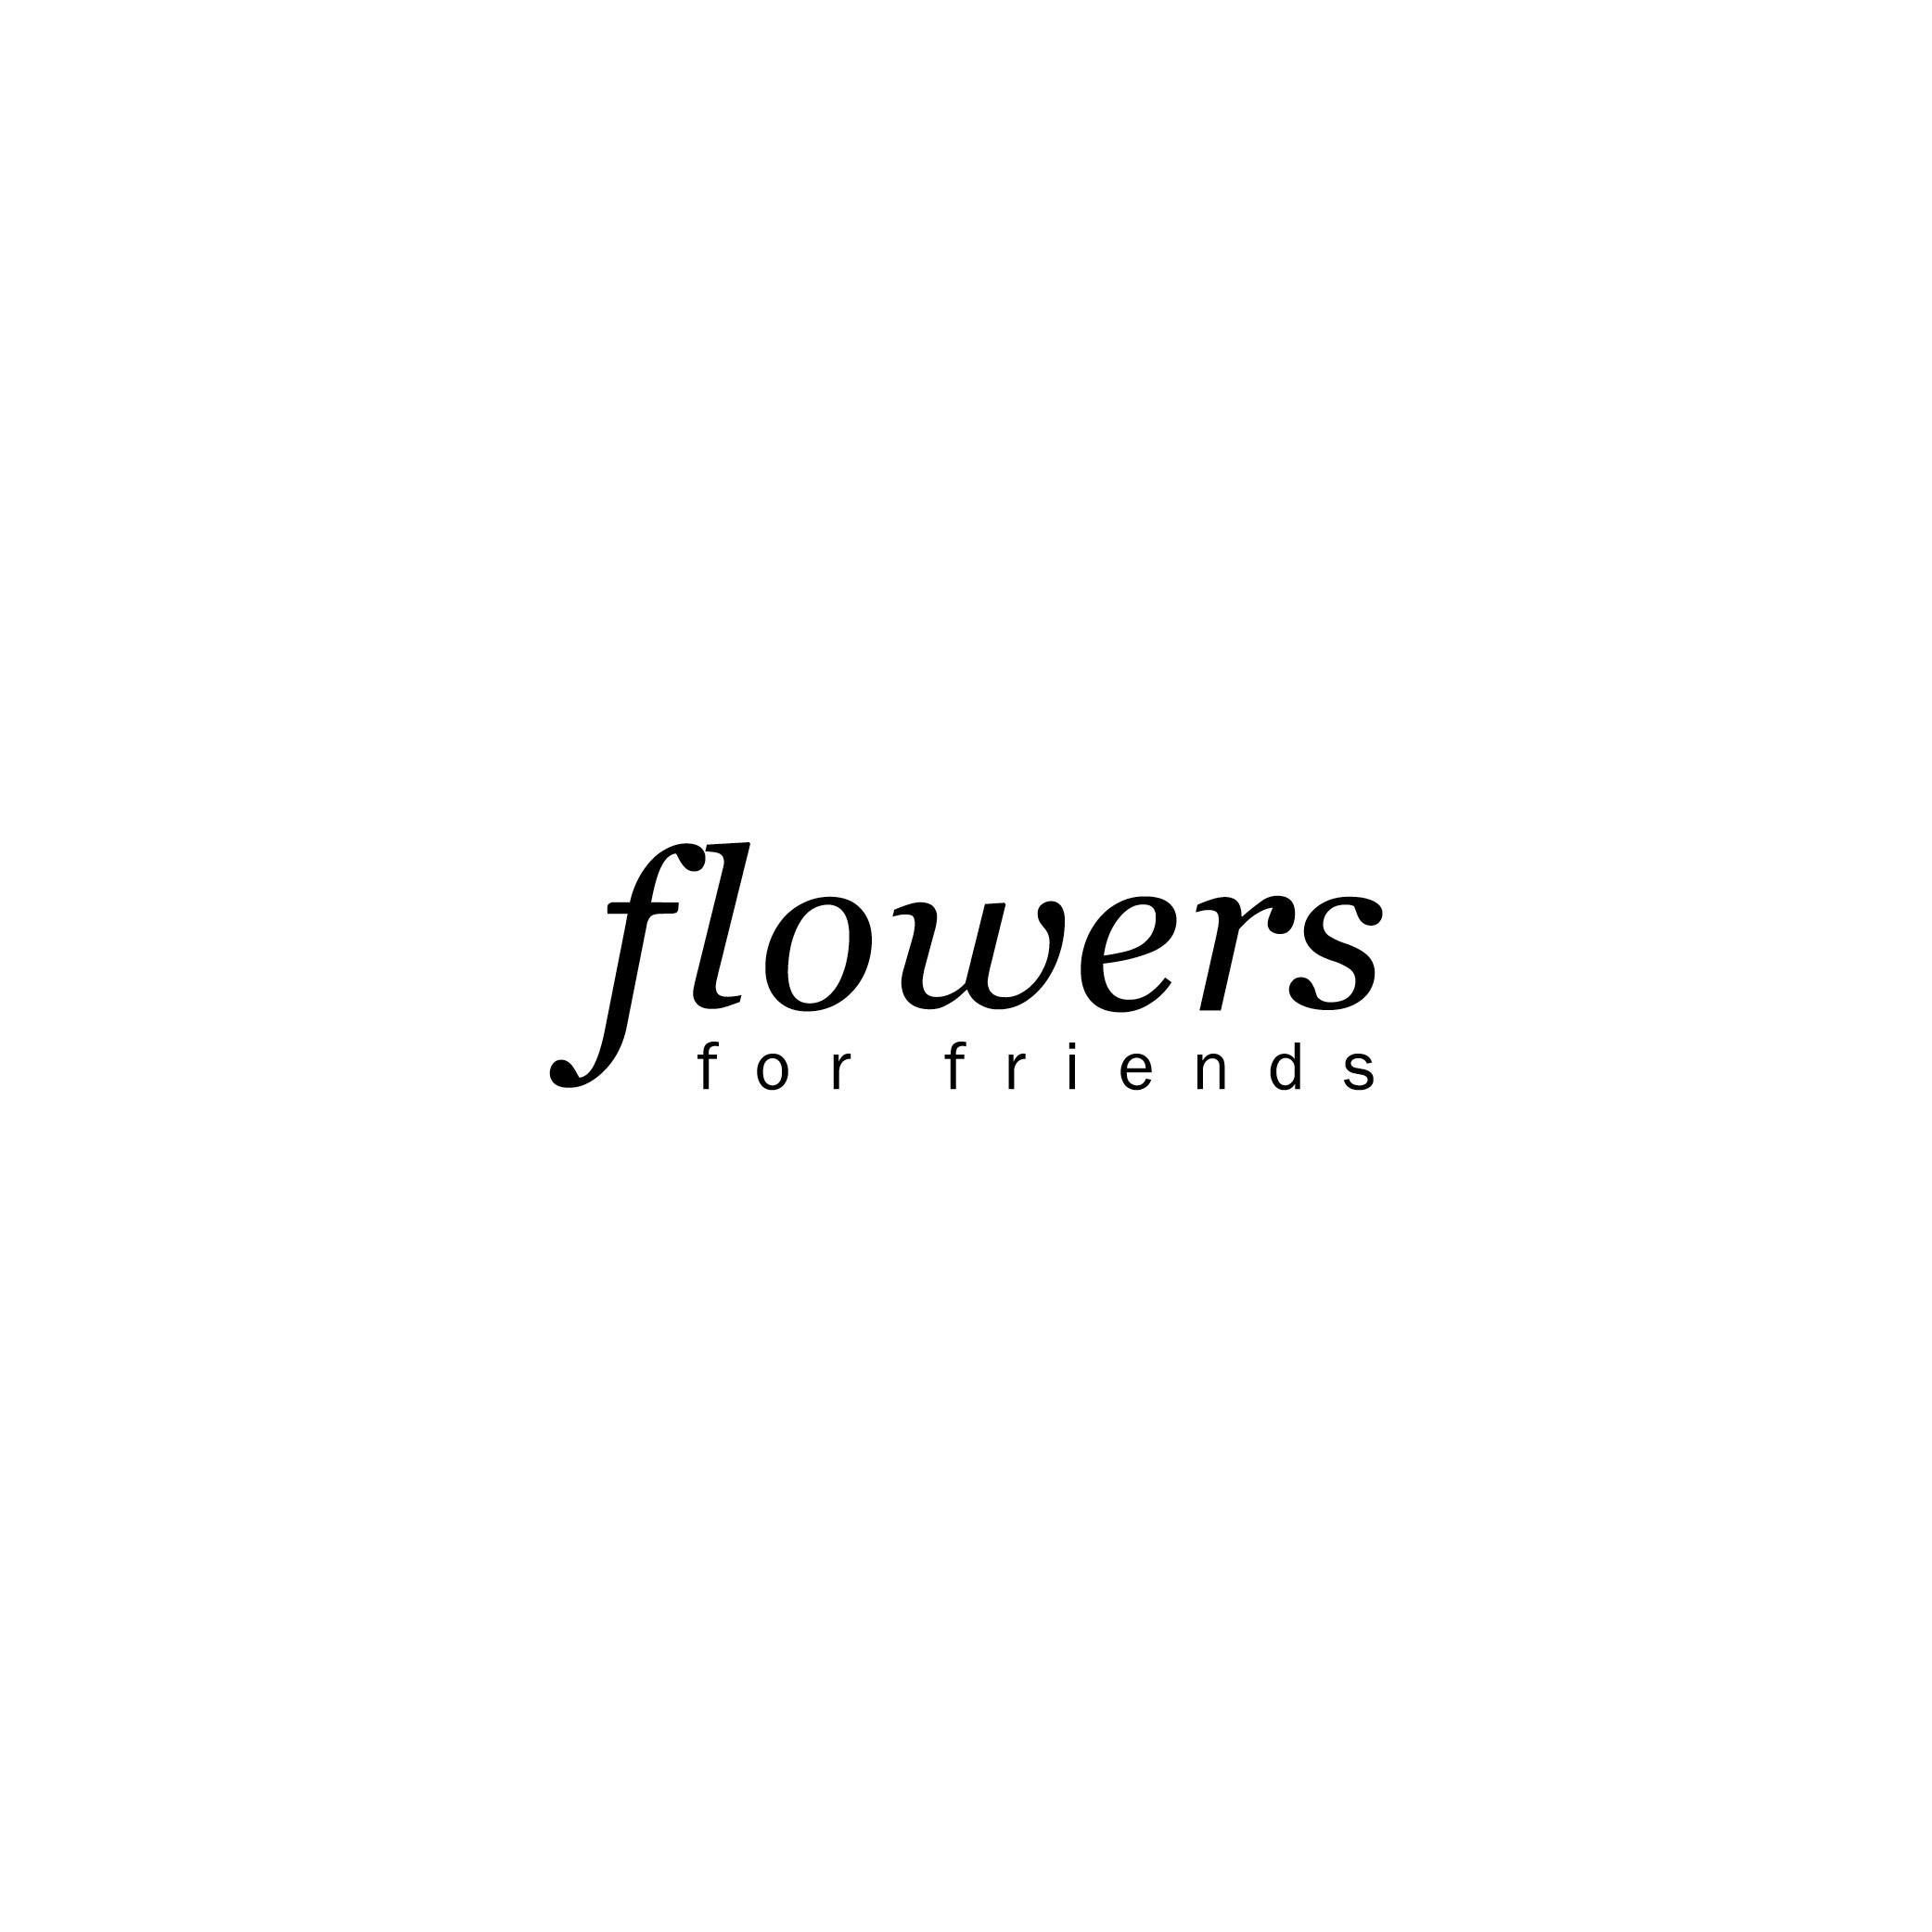 Marke in den Claudia Obert Shops: flowers for friends